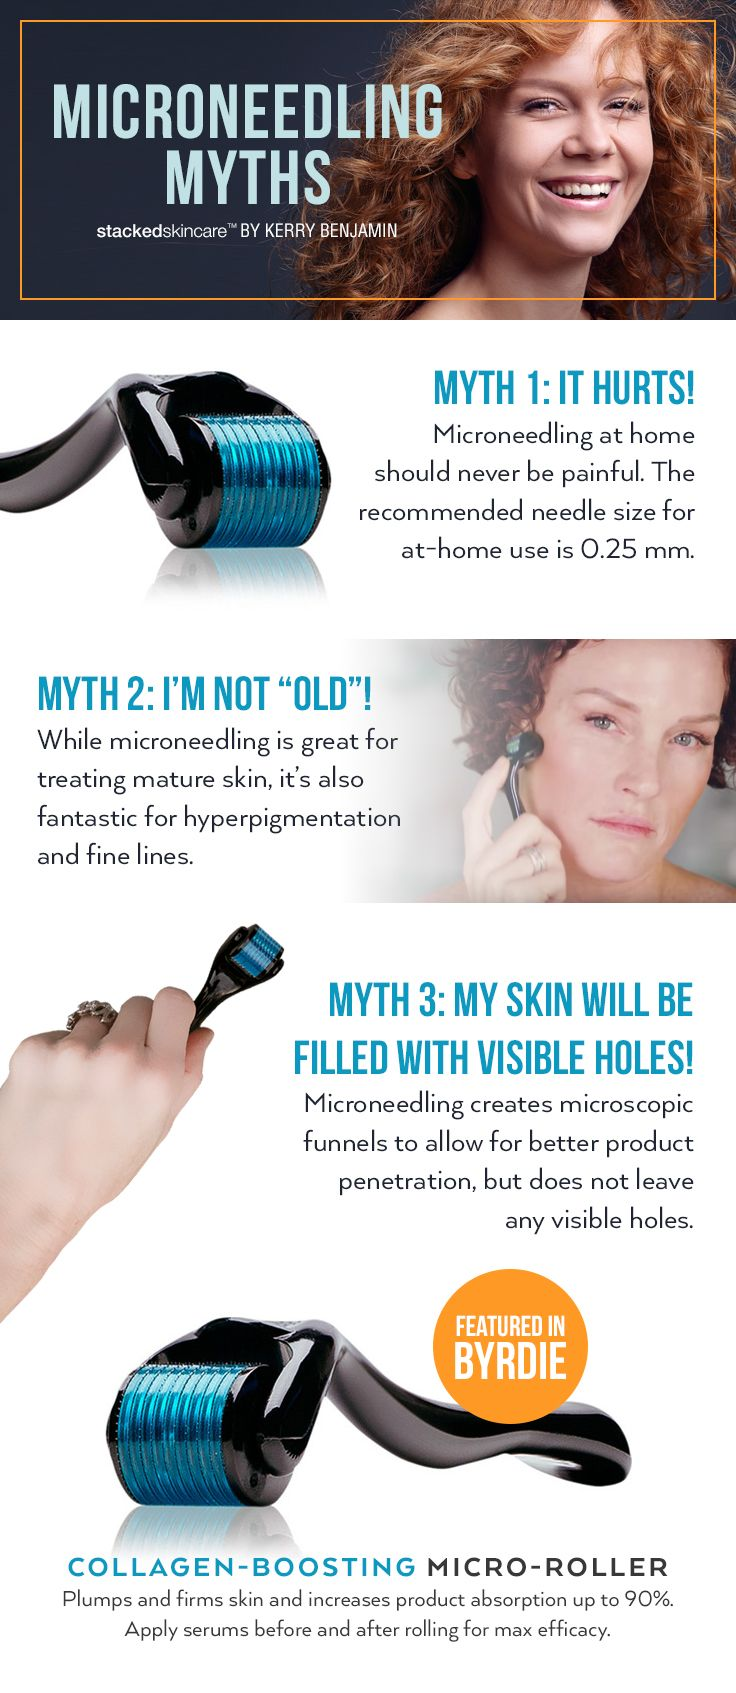 #Microneedling myths debunked. Try our bestselling collagen-boosting micro-roller, now available for $30. #Skincare